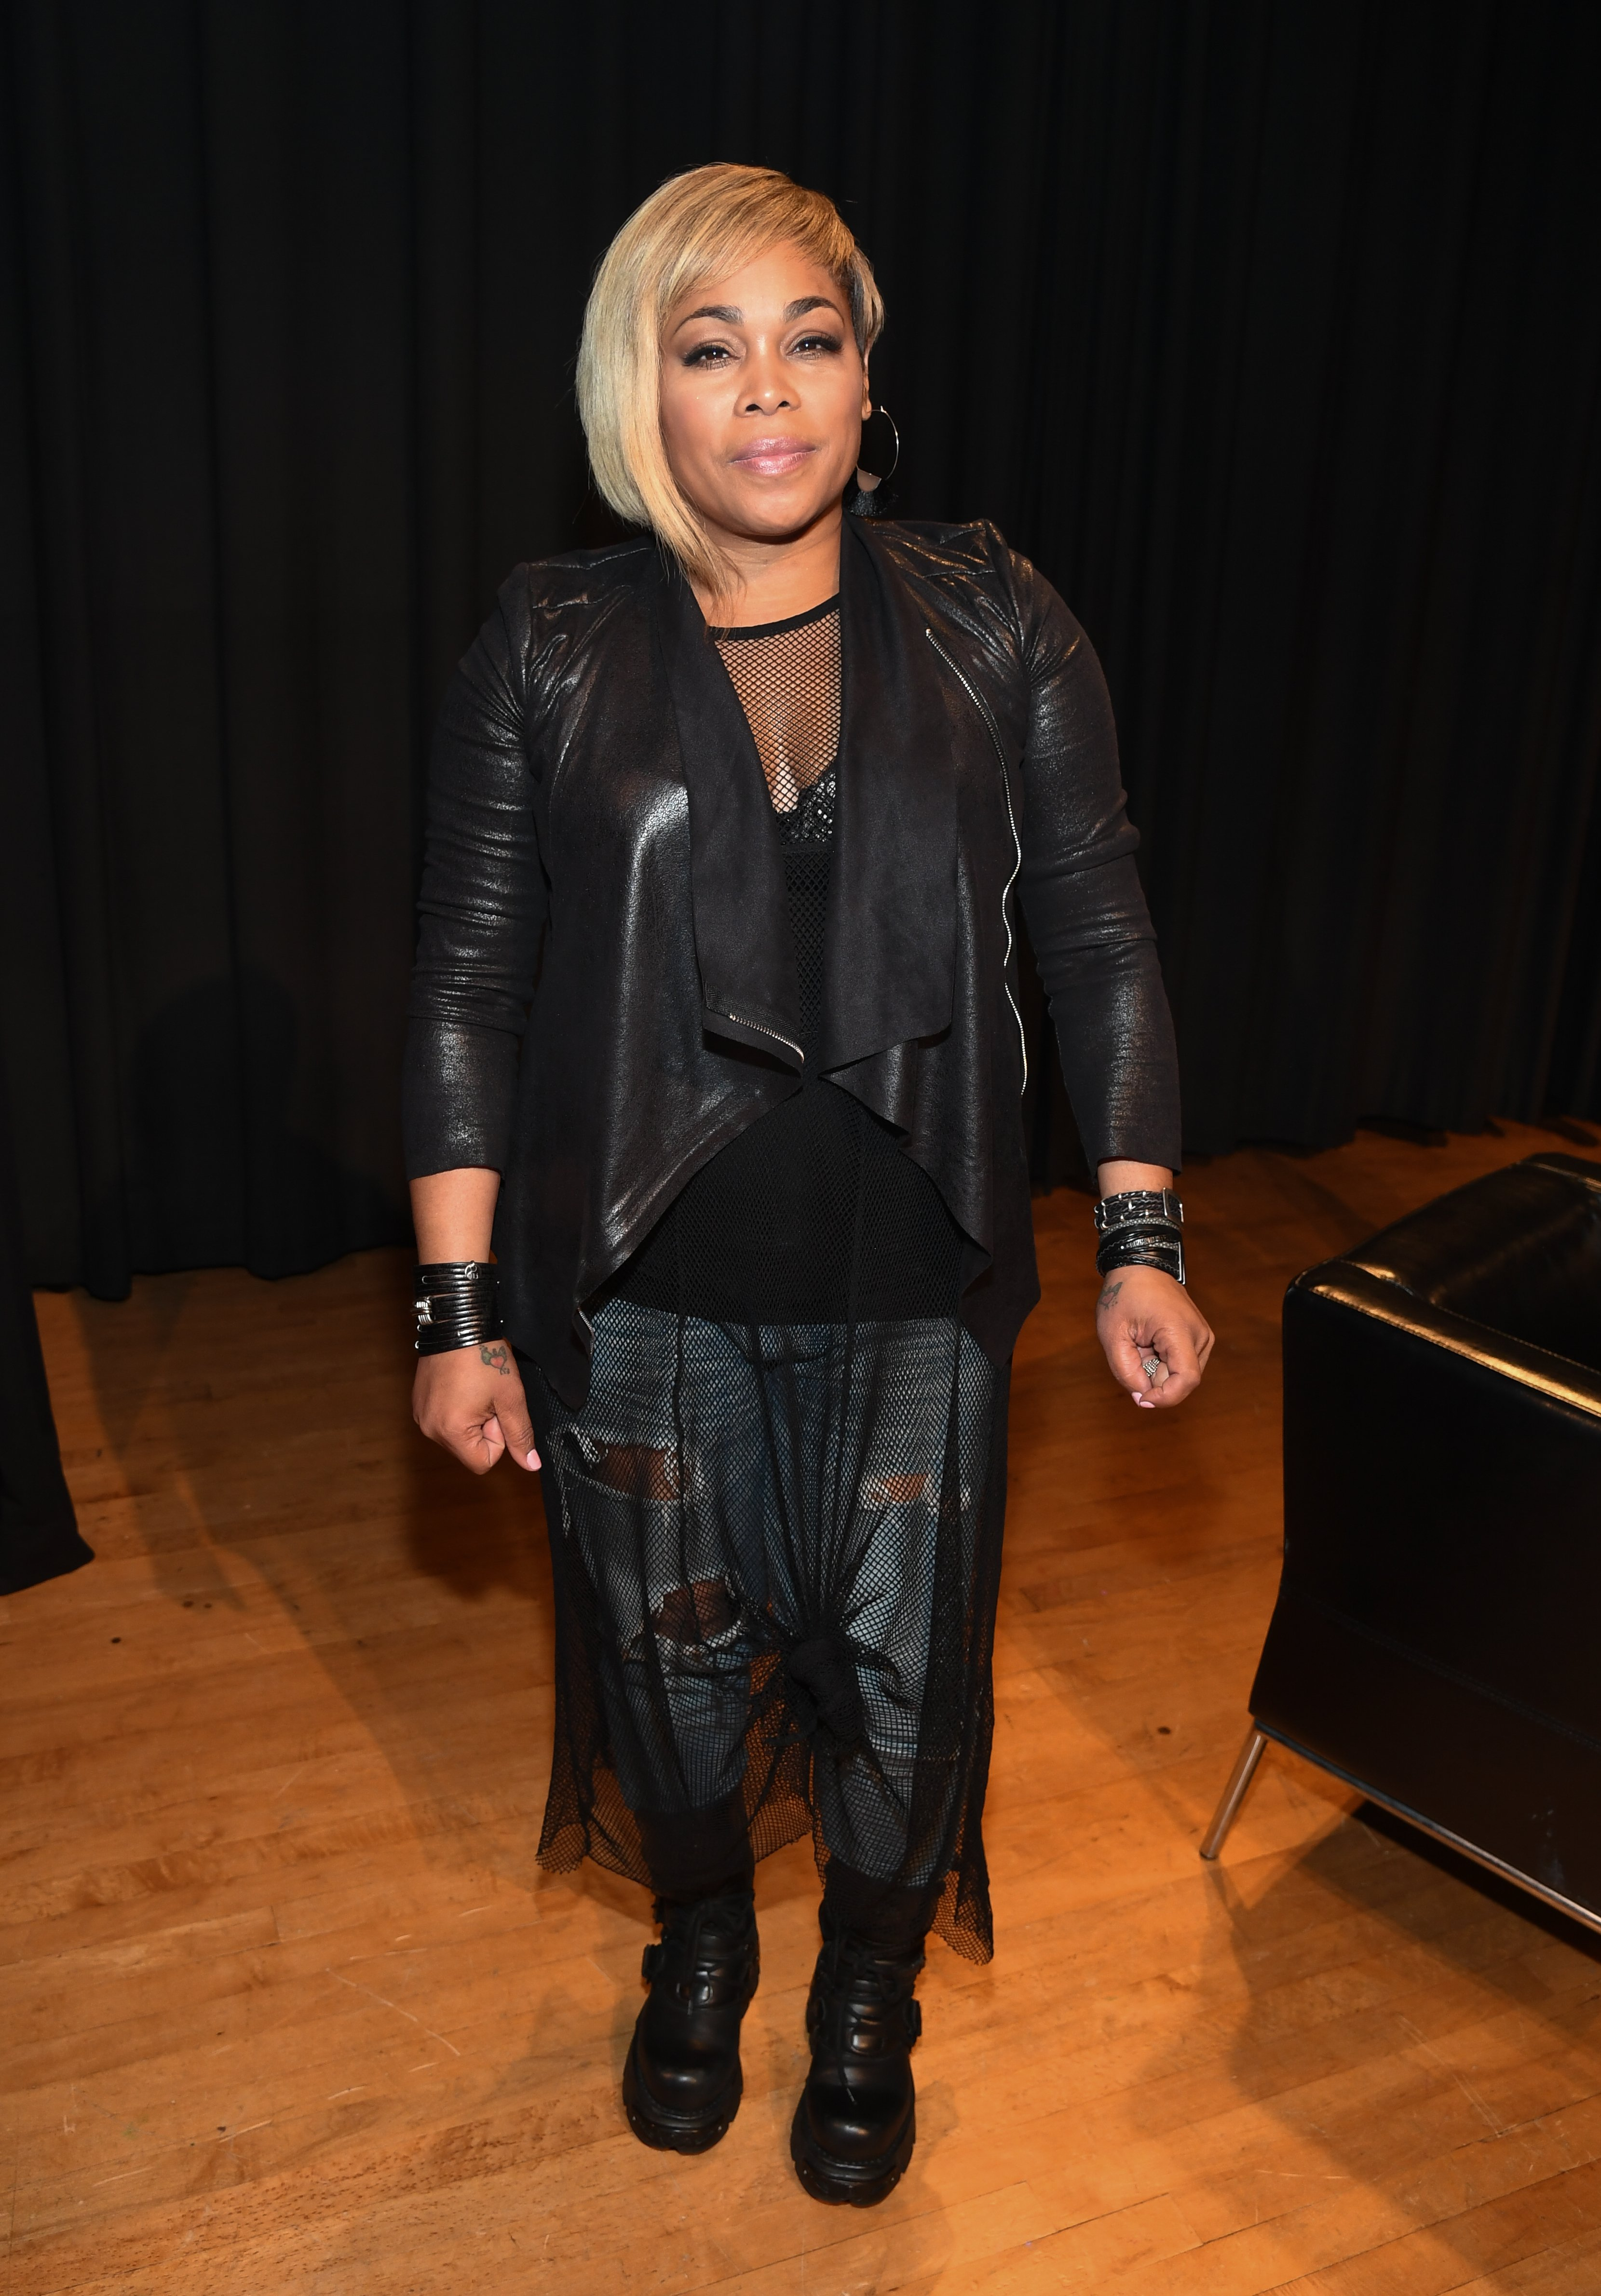 T-Boz on October 9, 2017 in Atlanta, Georgia | Source: Getty Images/Global Images Ukraine